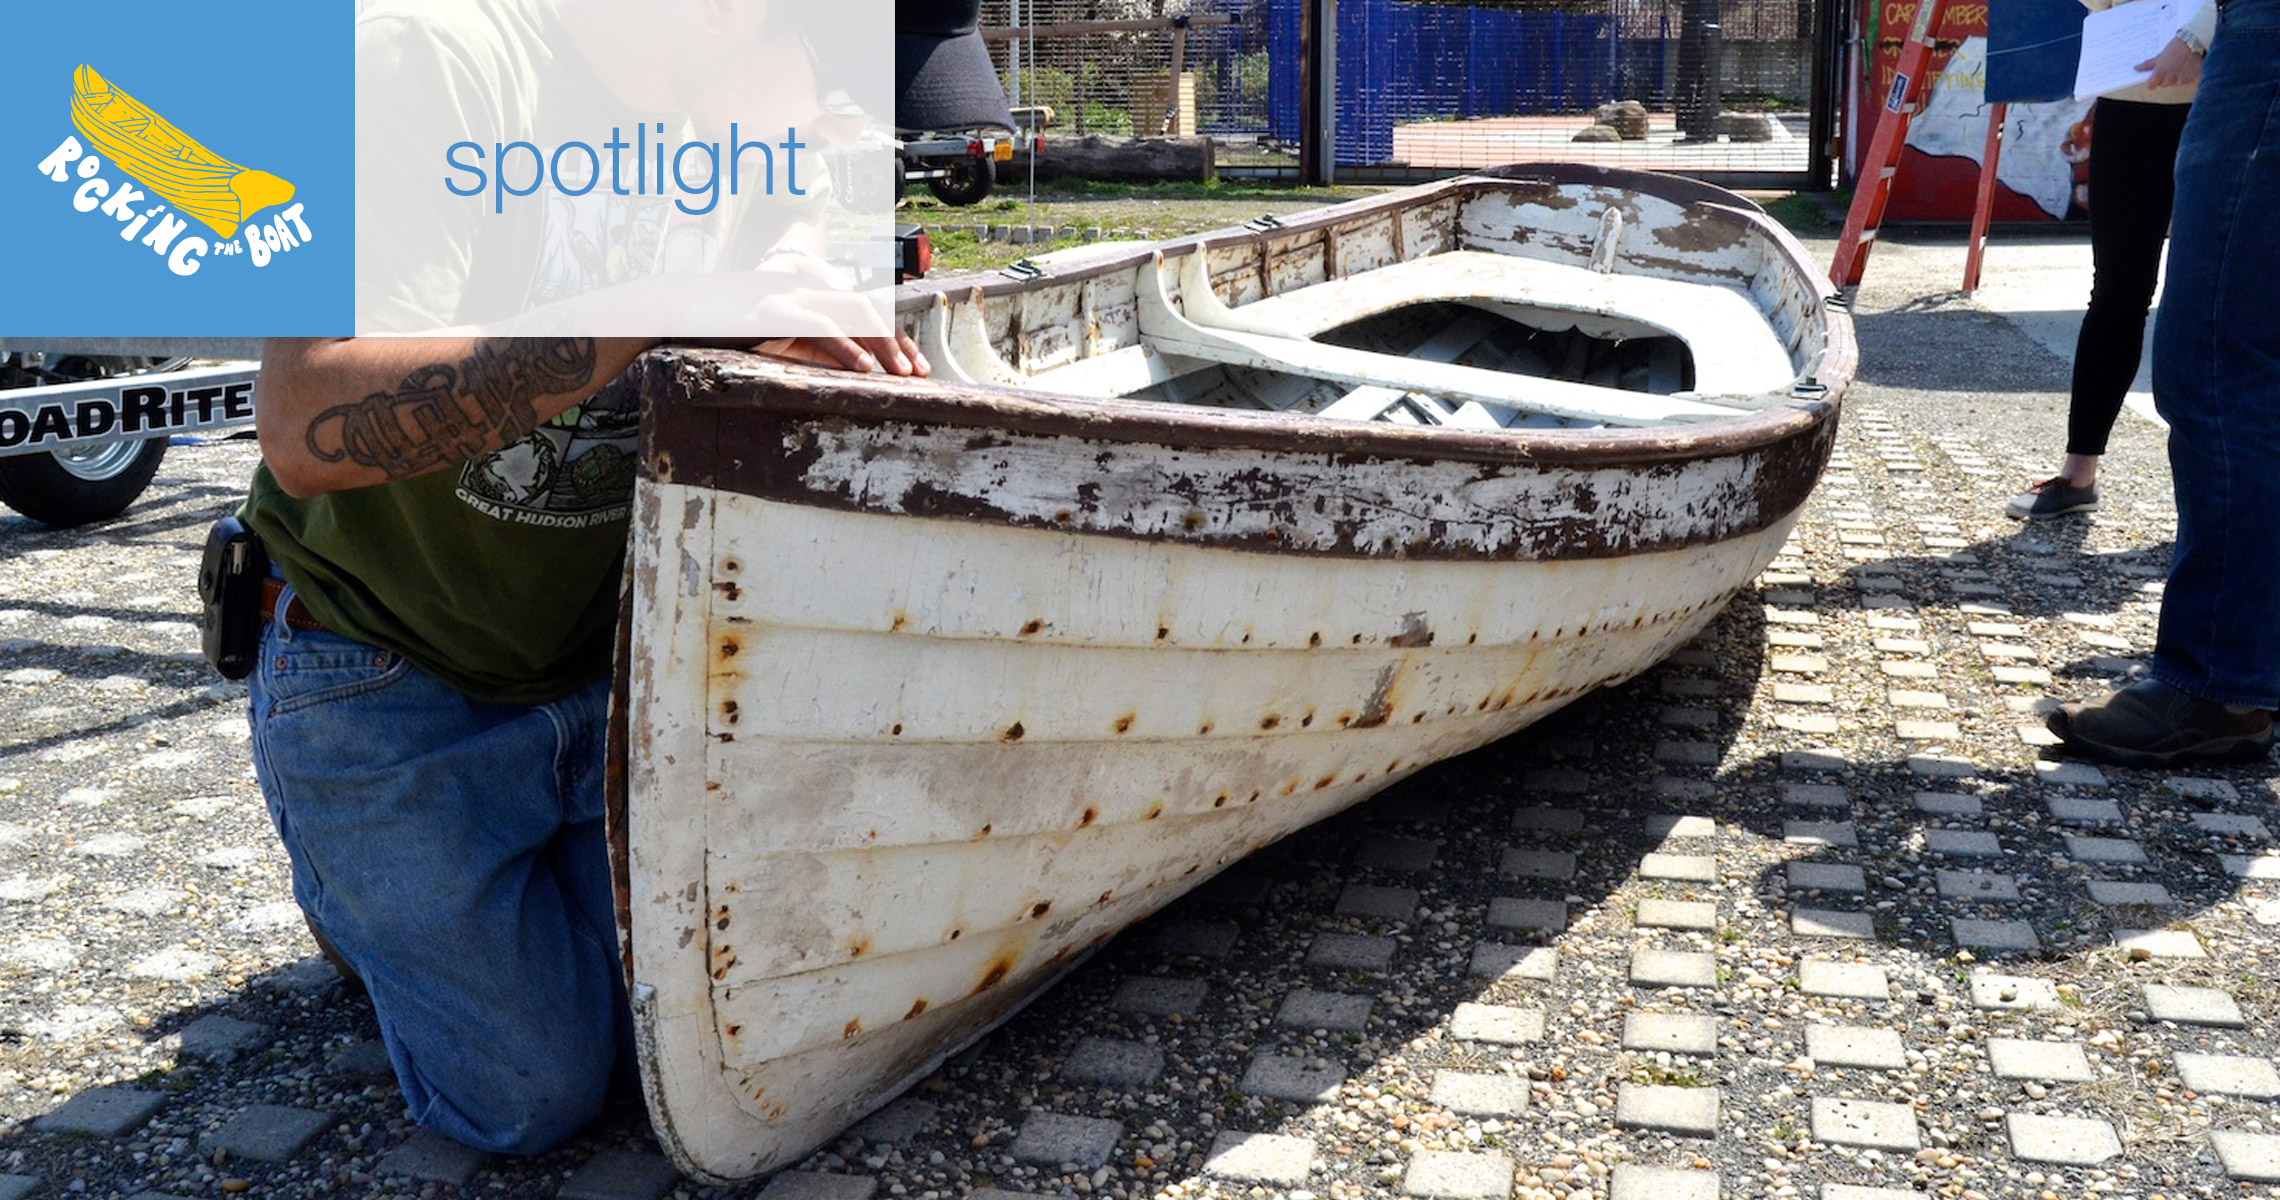 spotlight on the spurling skiff